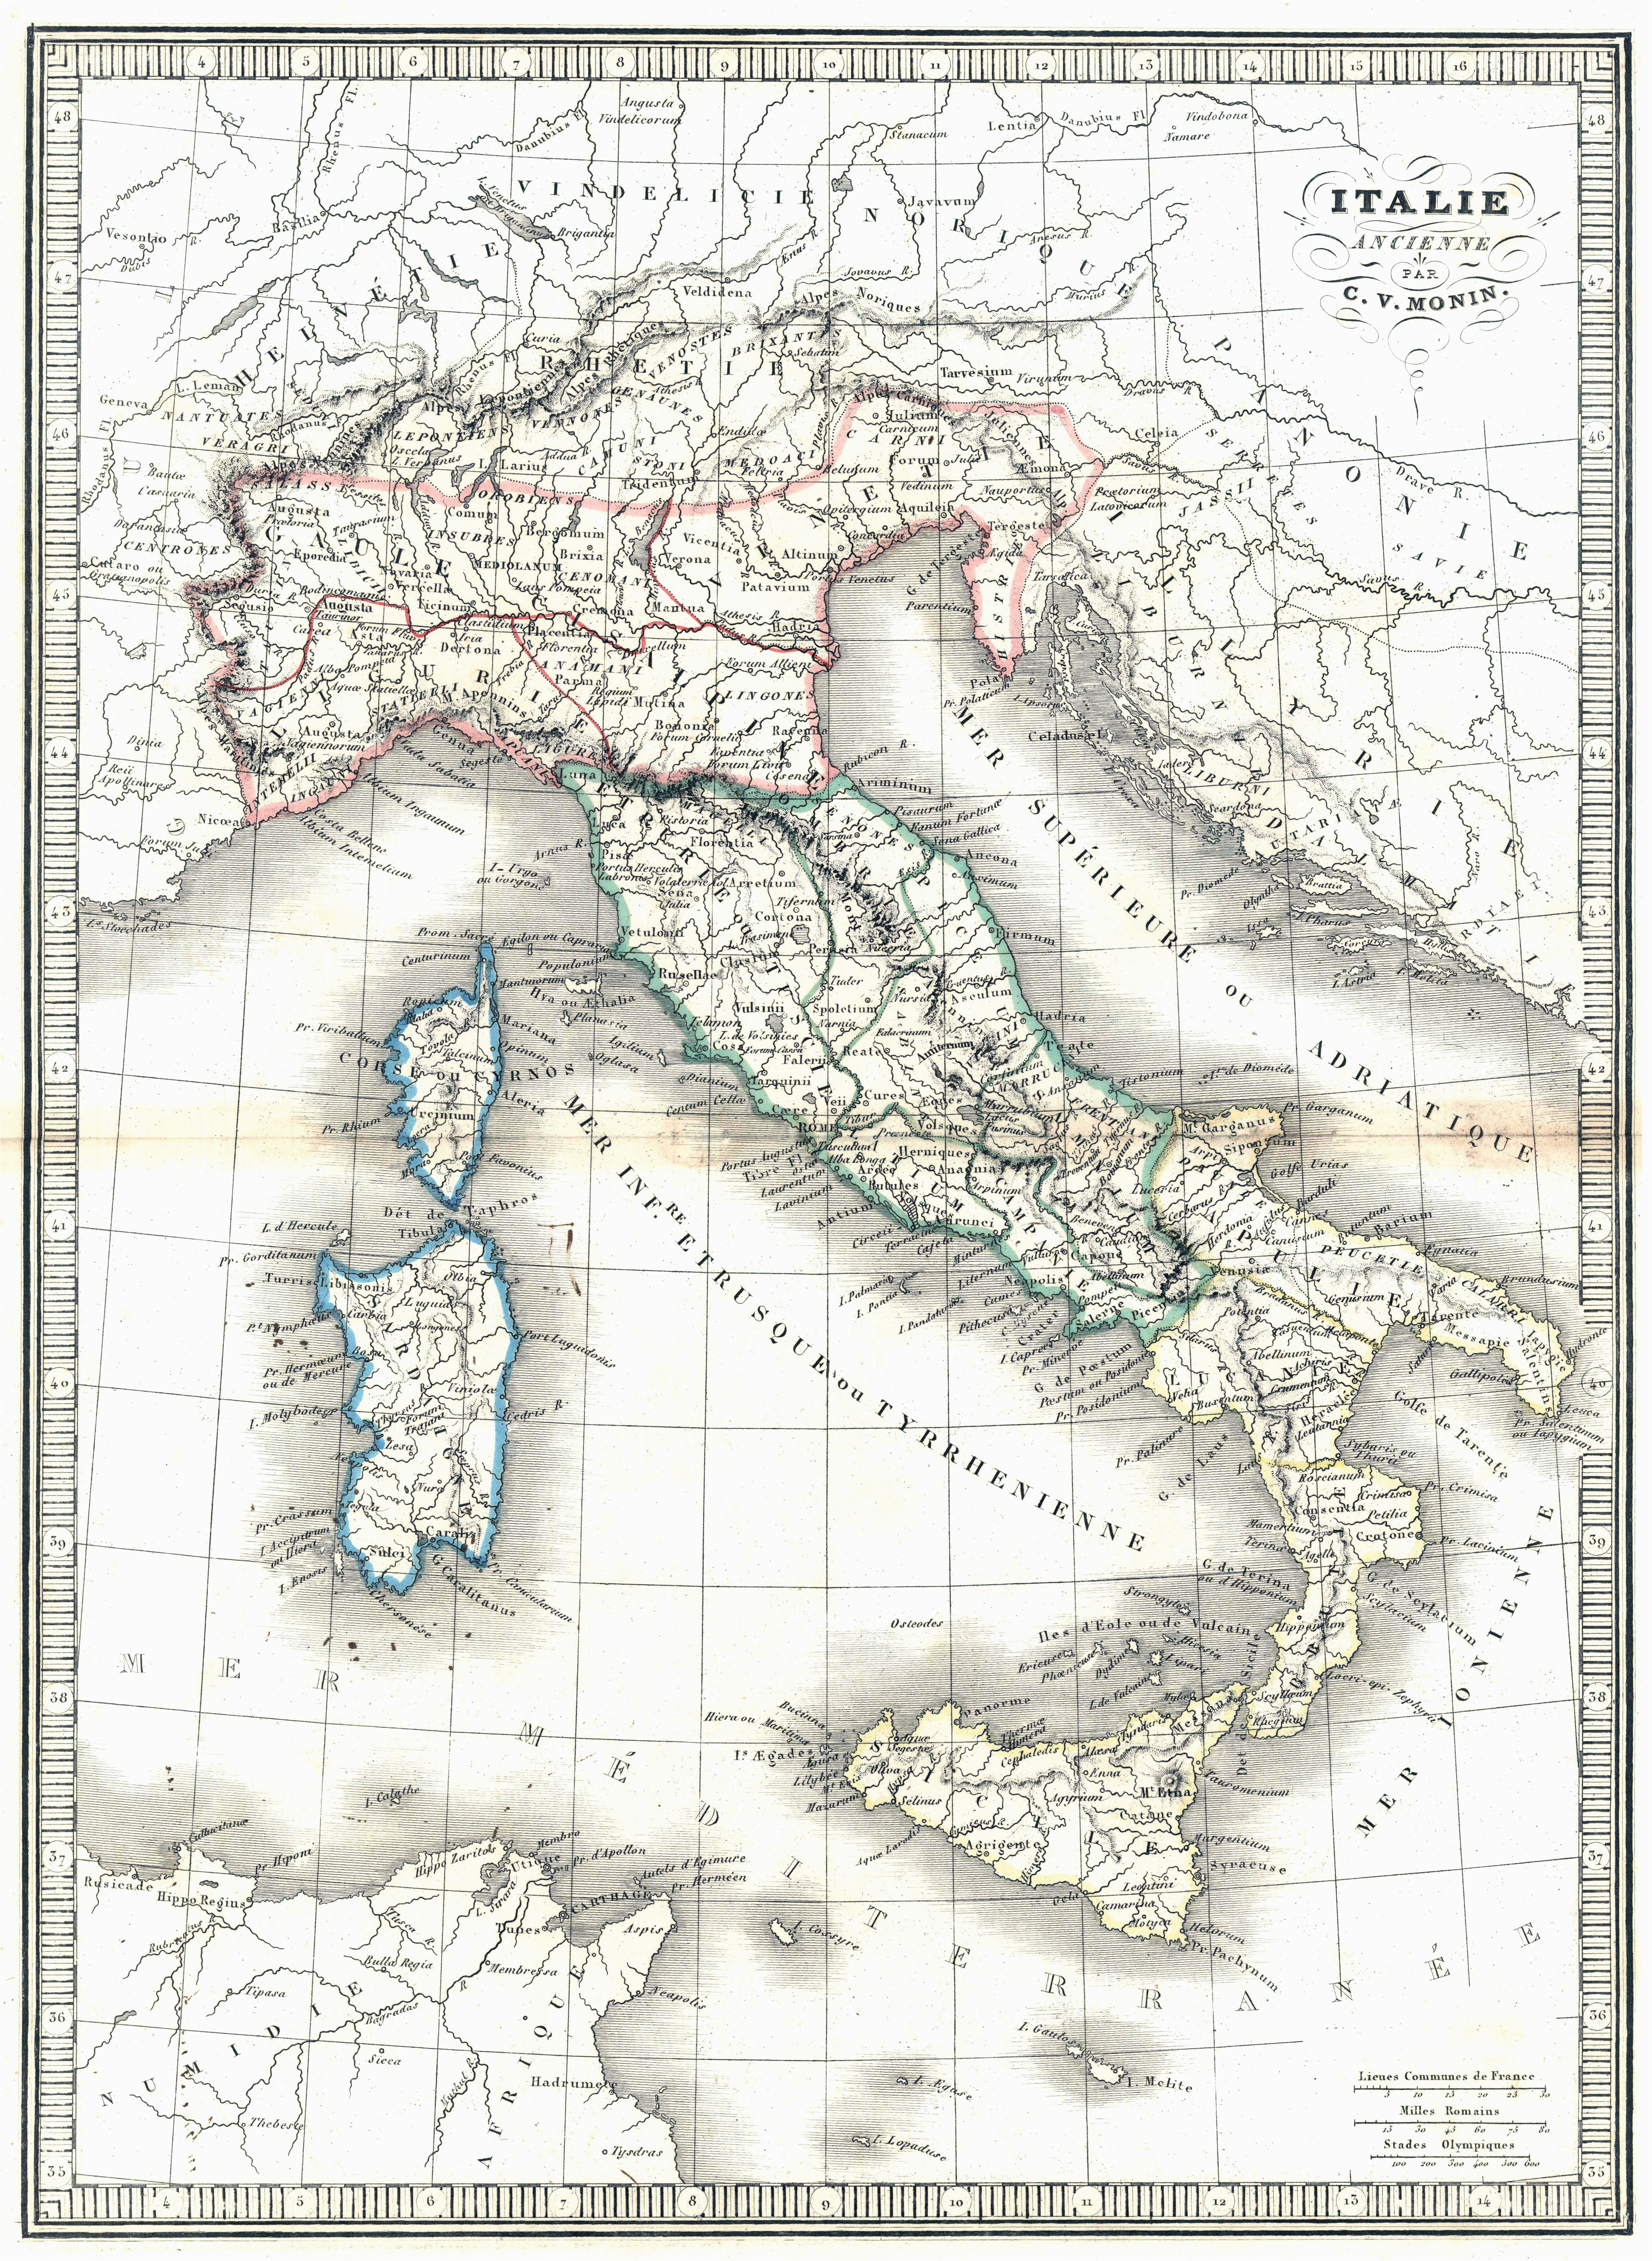 Italy Map Ww2 Military History Of Italy During World War I Wikipedia